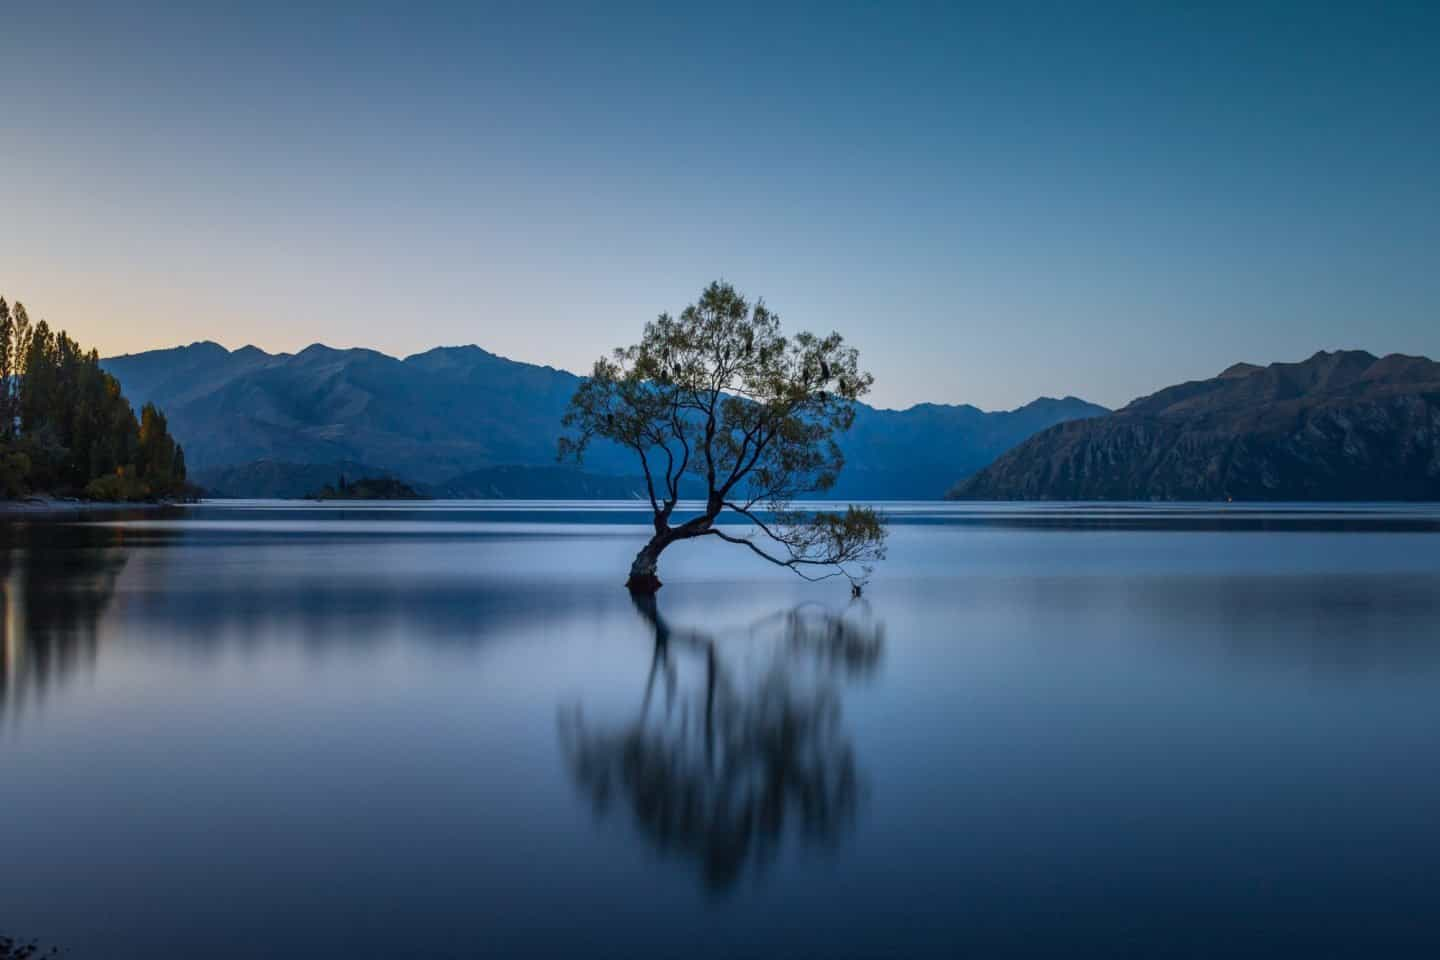 Day 5 on your itinerary will require another early start; you may as well shoot sunrise at That Wanaka Tree!